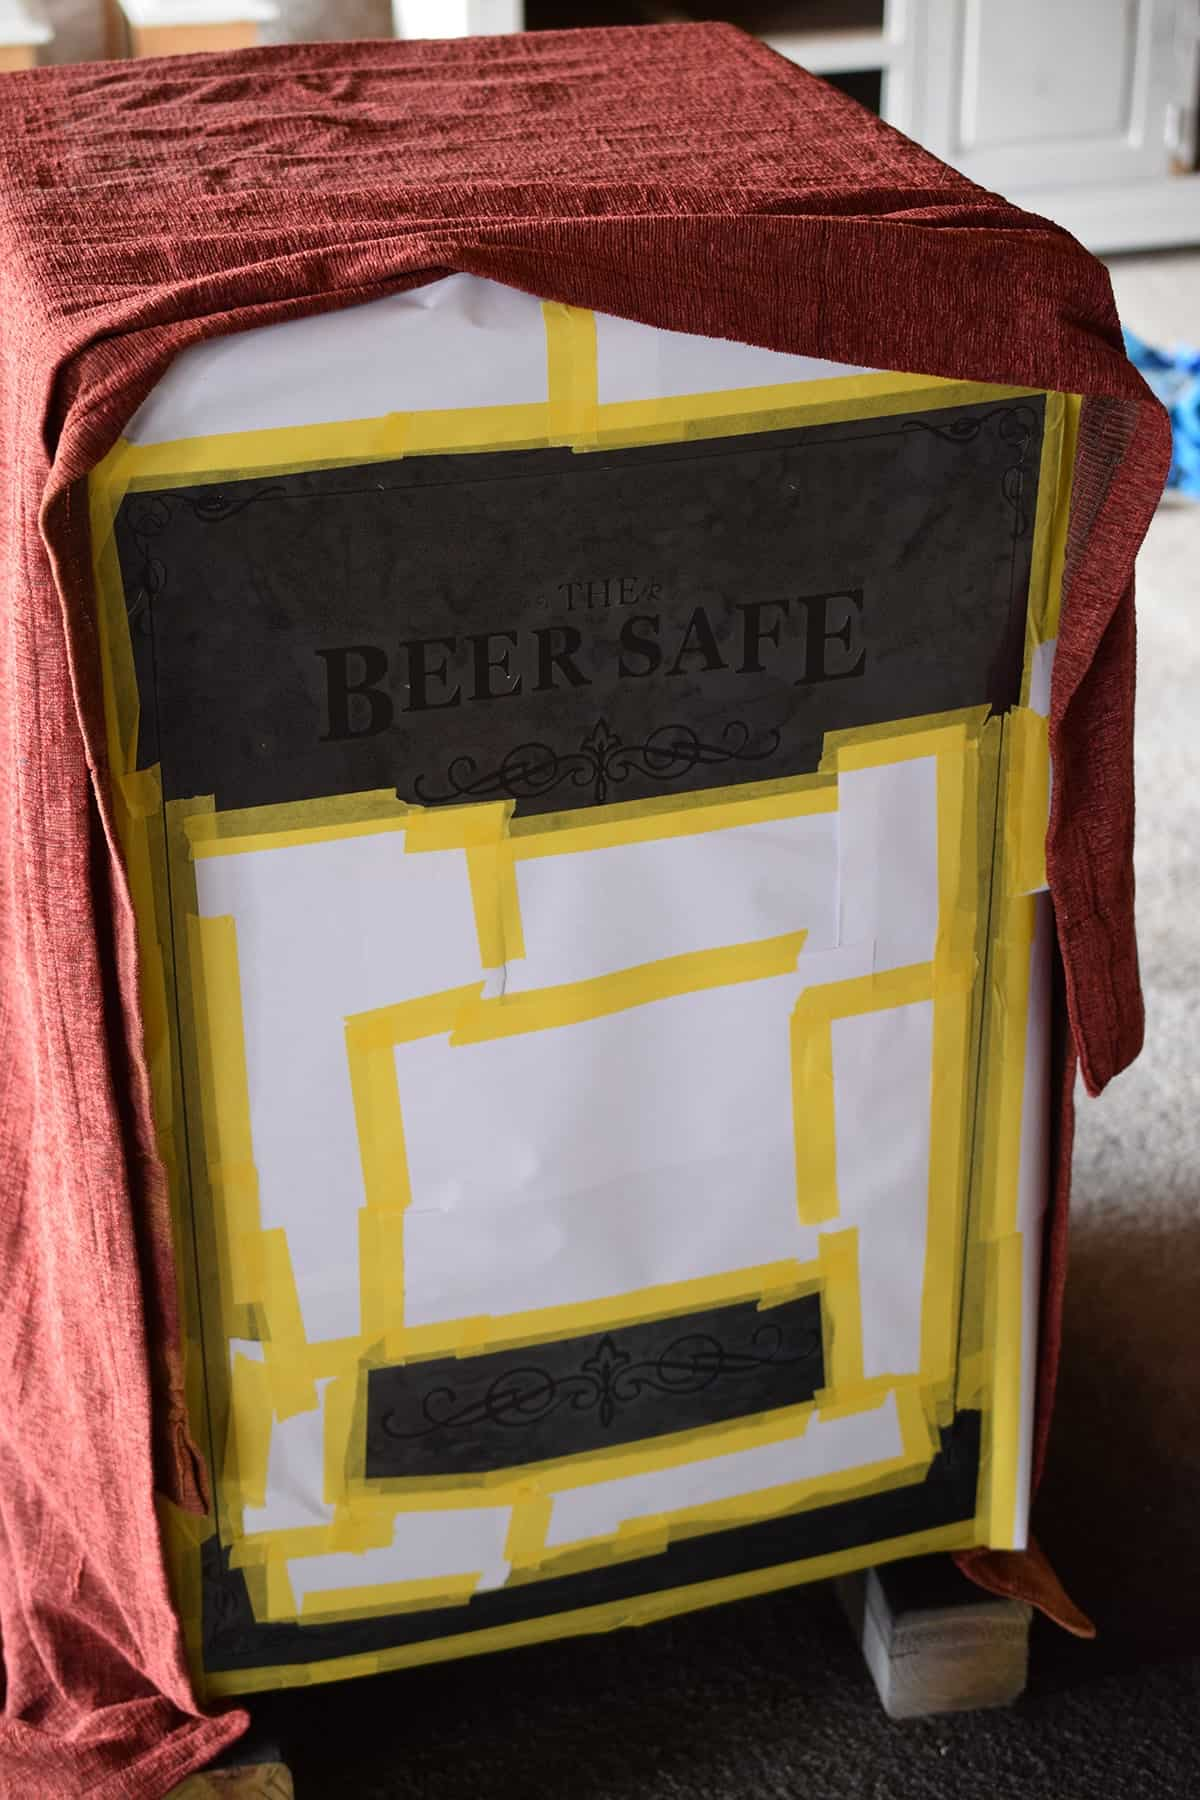 Mini fridge underneath red cloth with front door taped off in yellow tape and beer safe stencil applied.